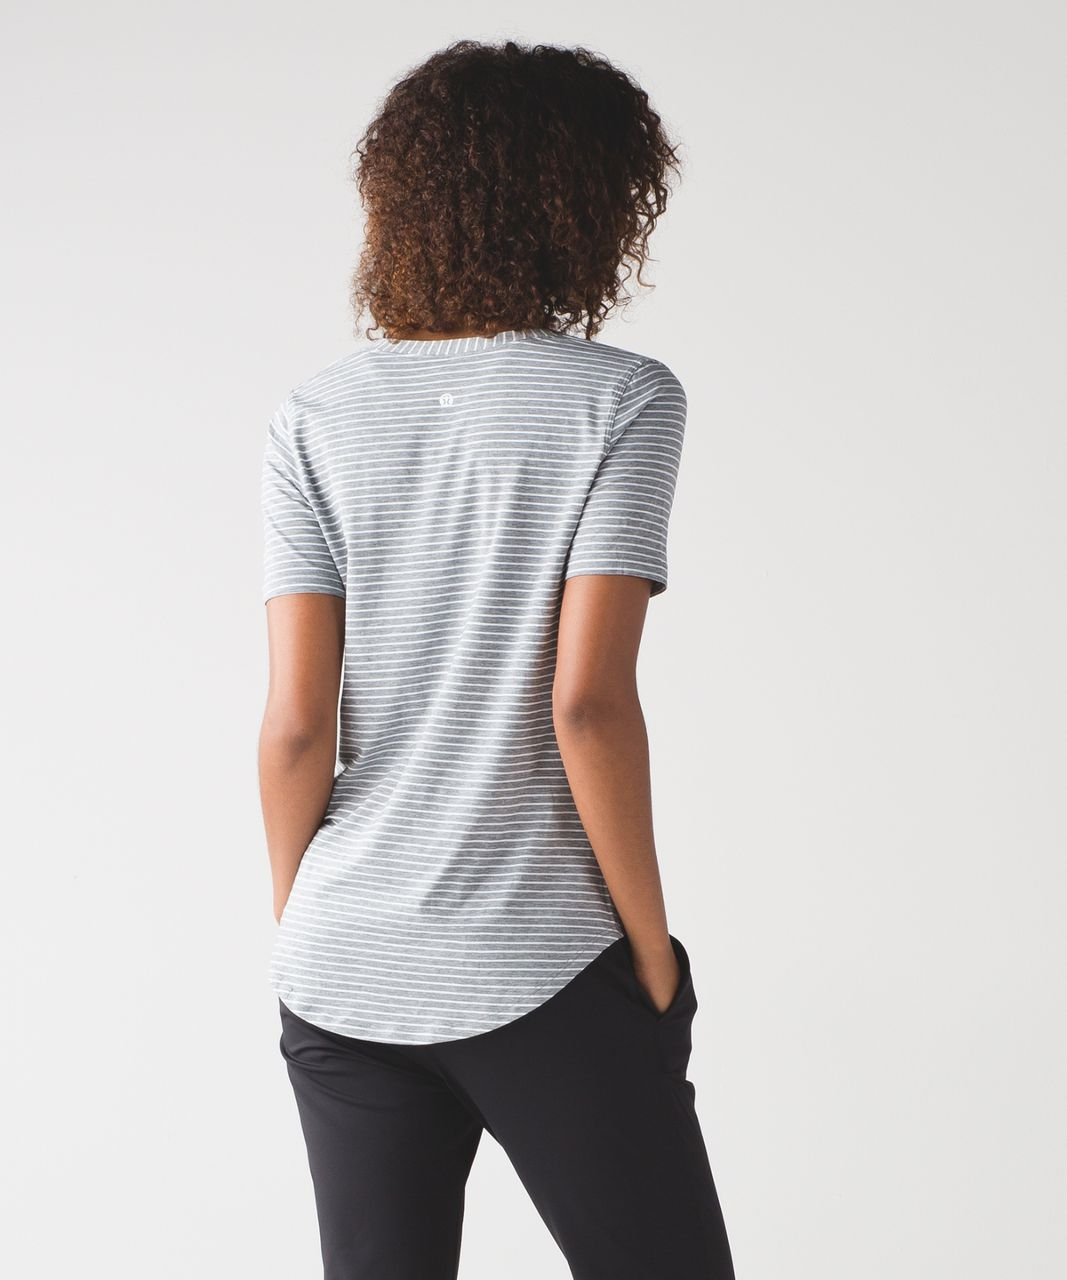 Lululemon Love Tee III - Modern Stripe Heathered Medium Grey White